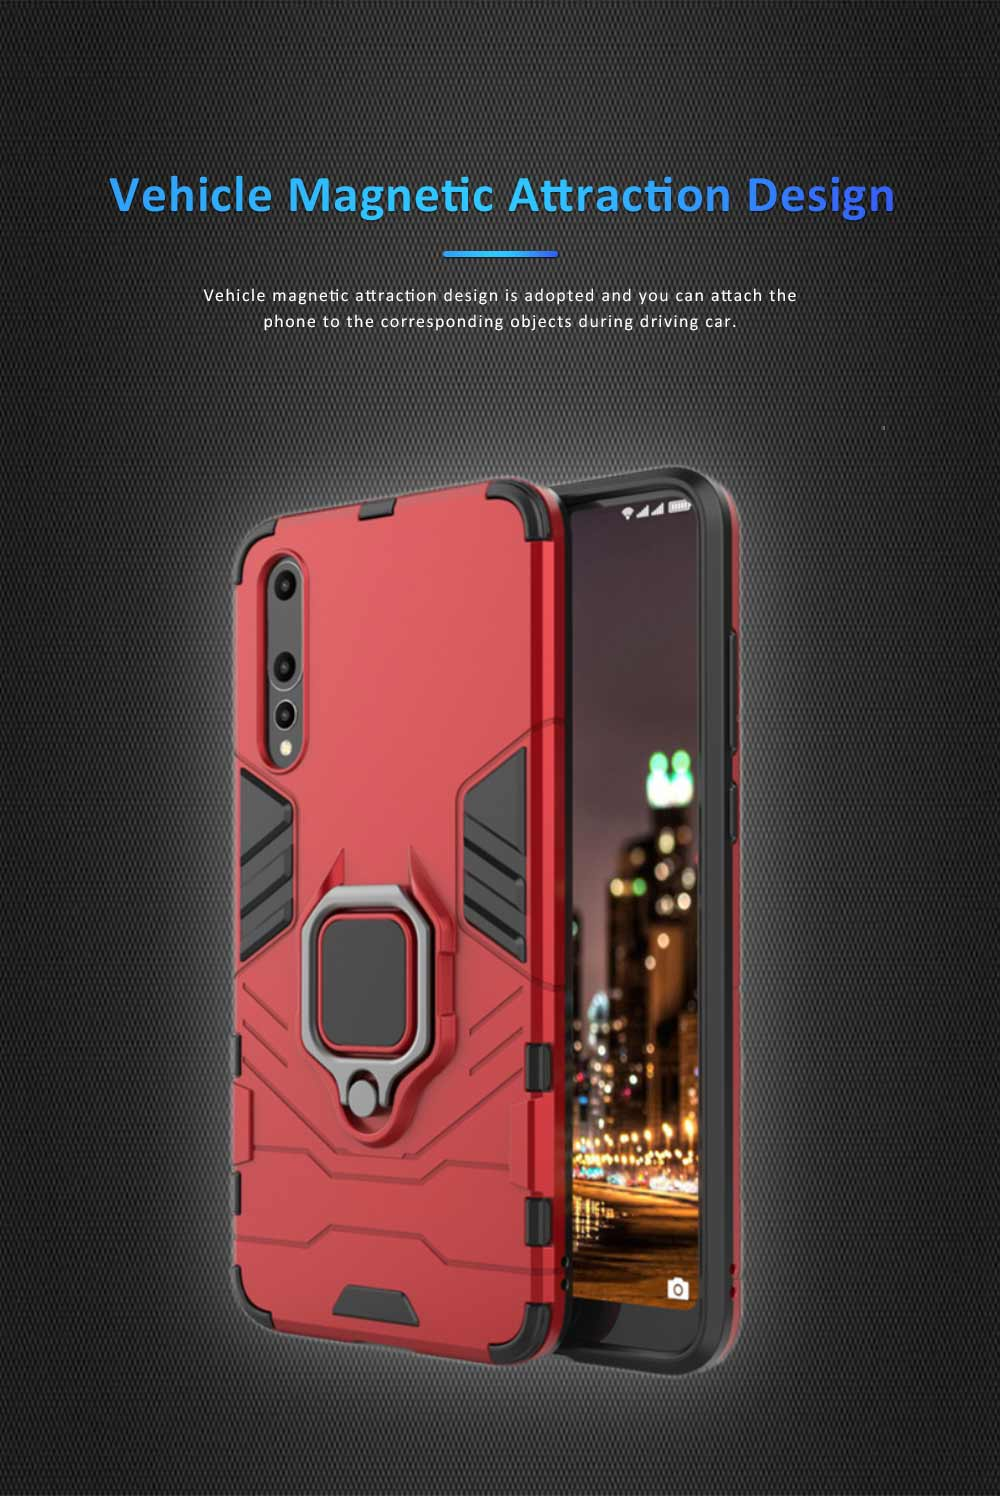 Soft PC TPU Huawei Phone Case with Vehicle Magnetic Attraction, Minimalist Luxury Breaking-proof Phone Cover with Ring Holder 4